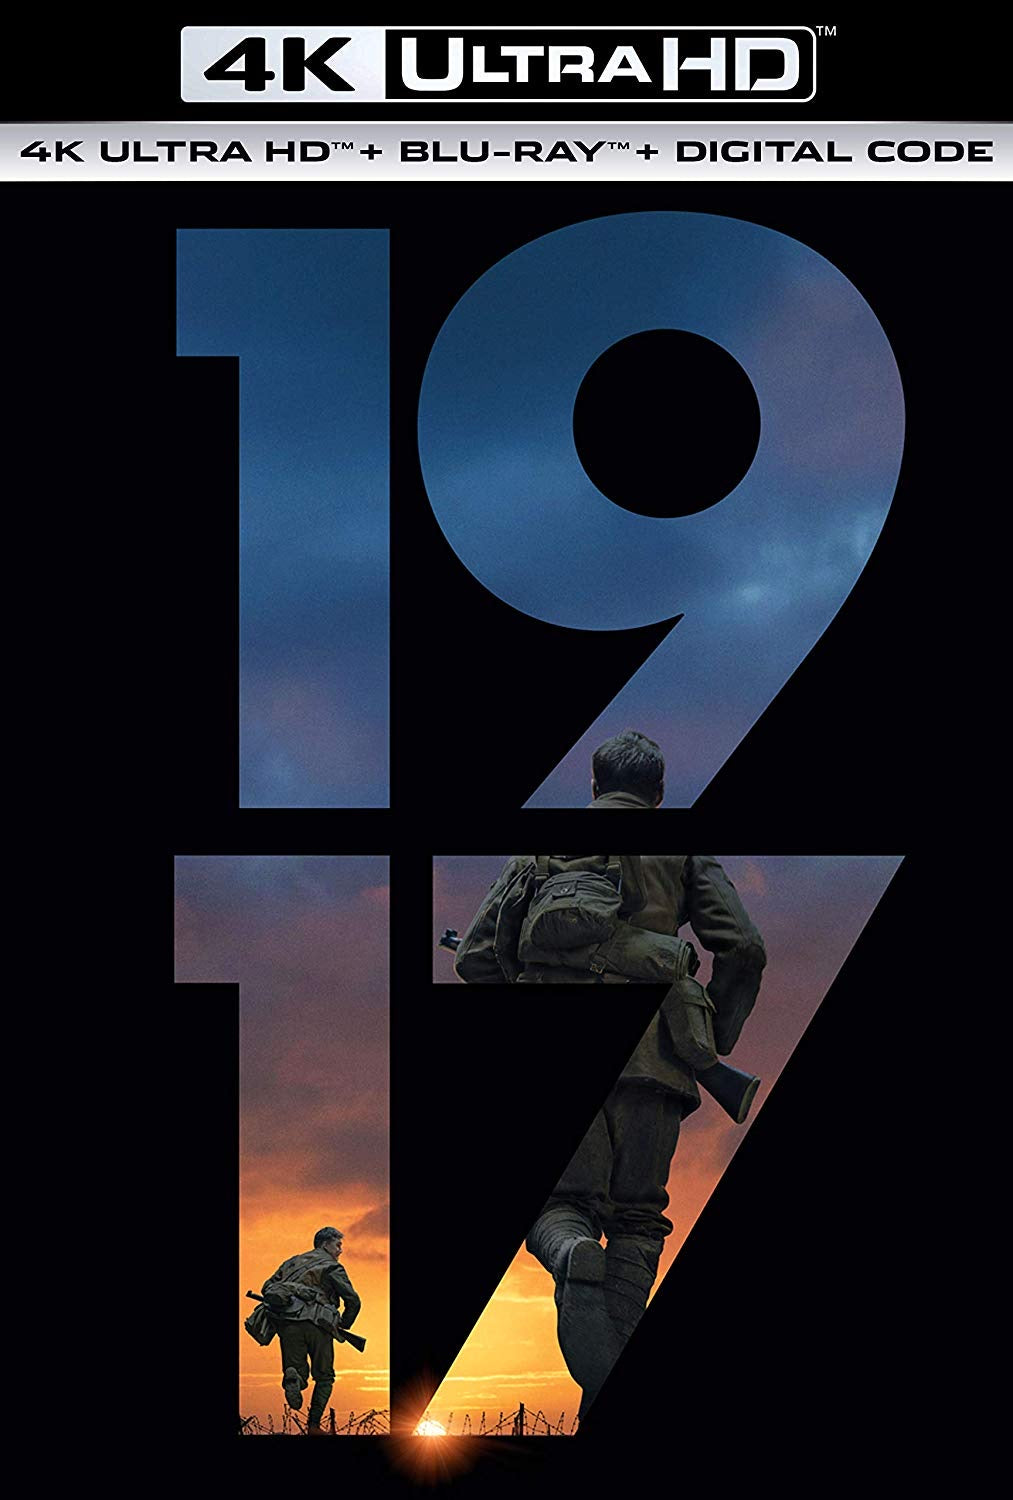 1917 (2019) Vudu or Movies Anywhere 4K code